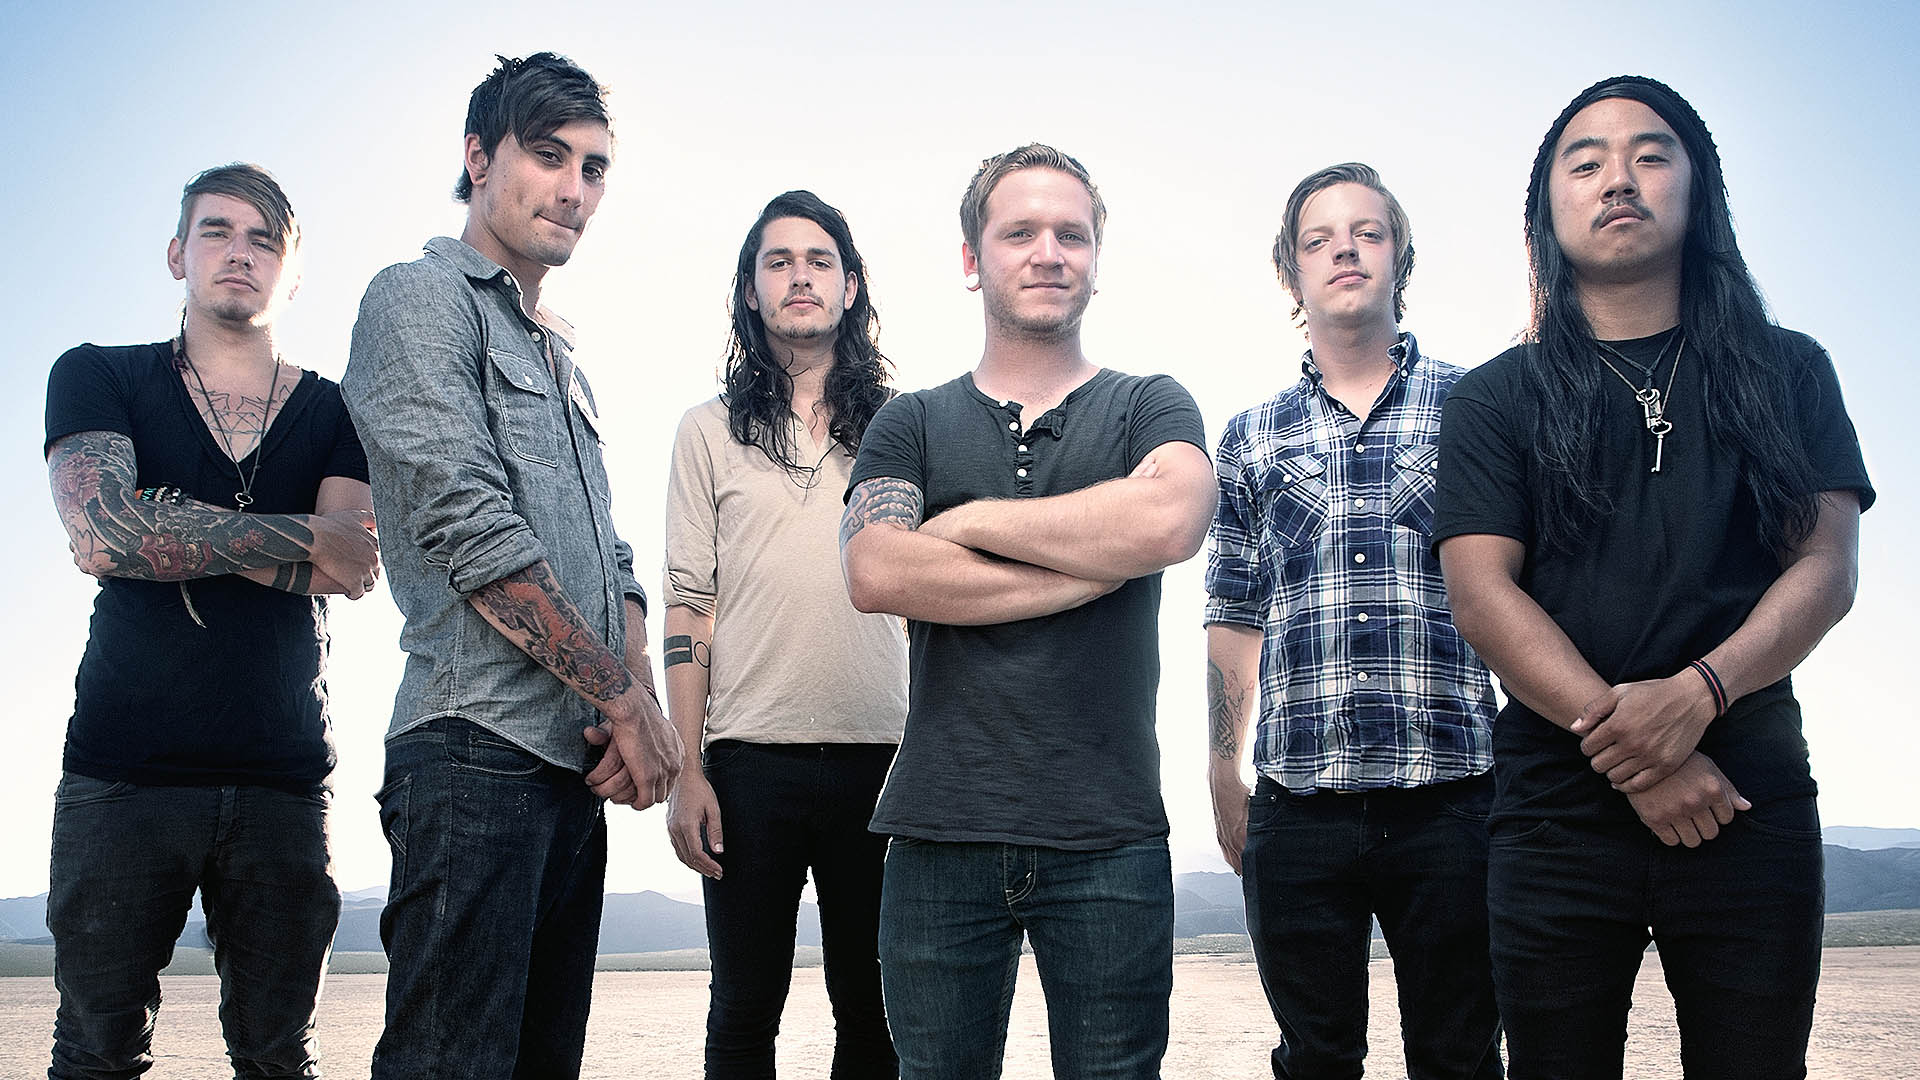 melodic hard rock from we came as romans